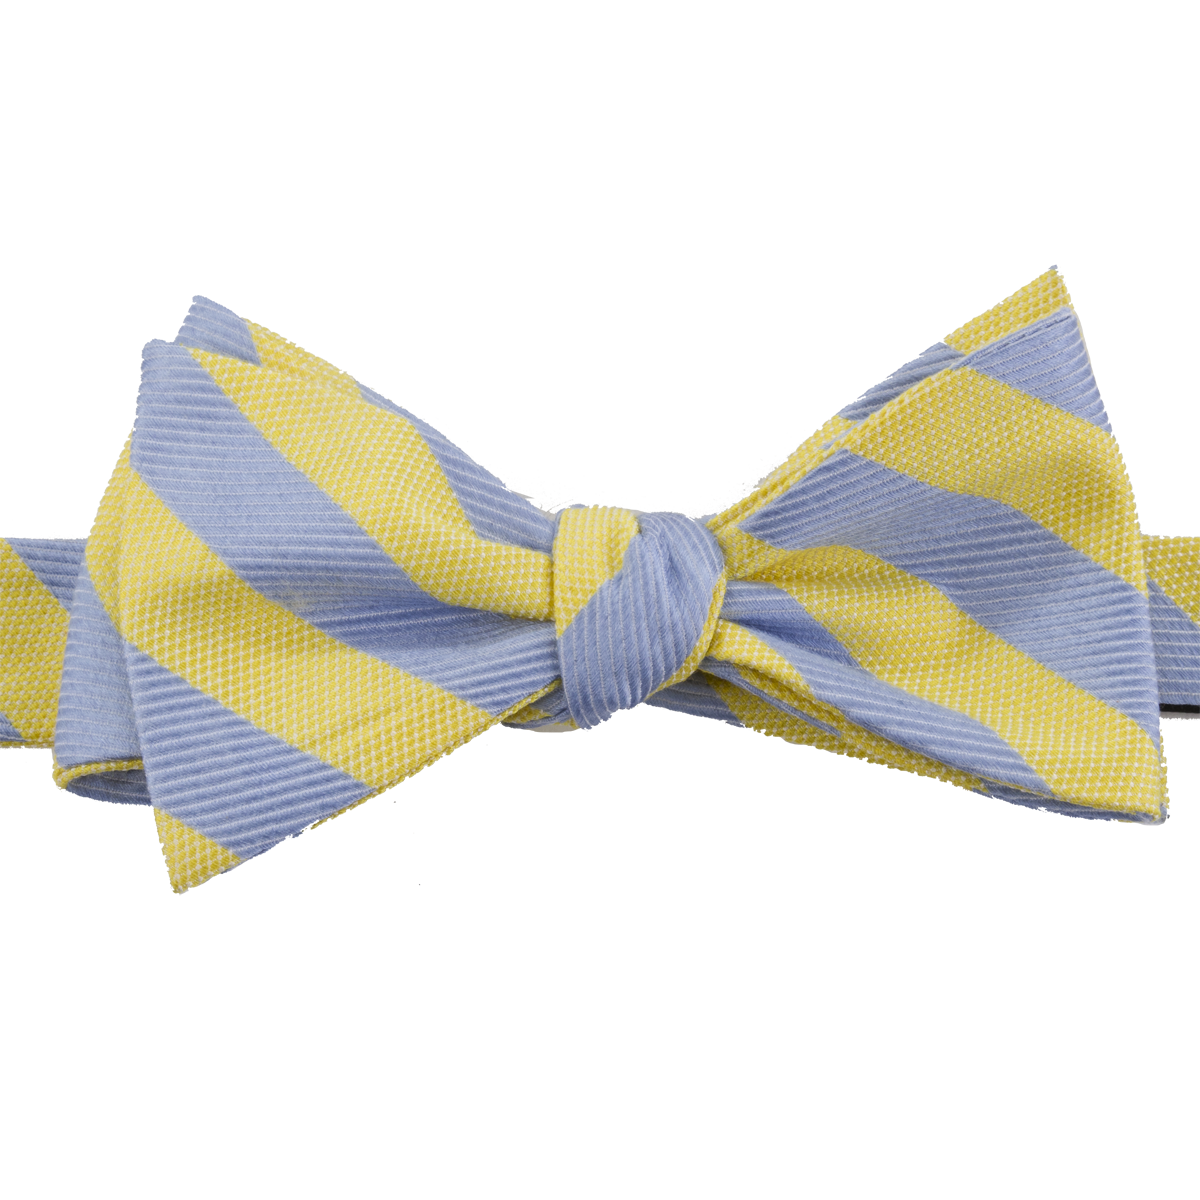 Souther Proper Blue Yellow Stripe Bow Tie - Striped Bow Tie PNG